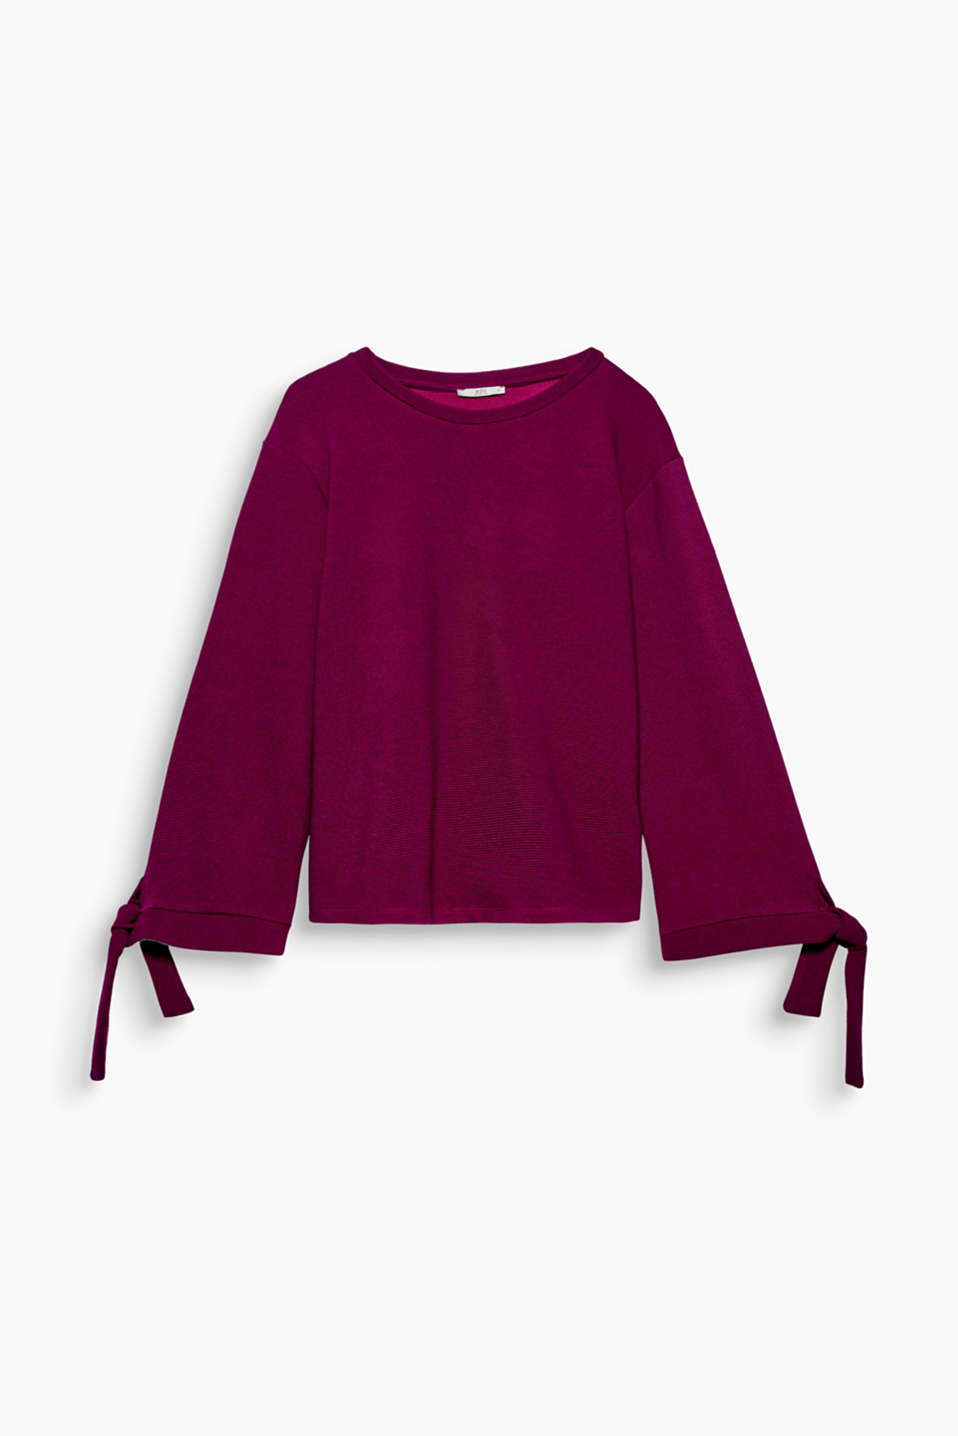 The flared sleeves with tie-up cuffs give this ribbed sweatshirt a super fashionable twist.